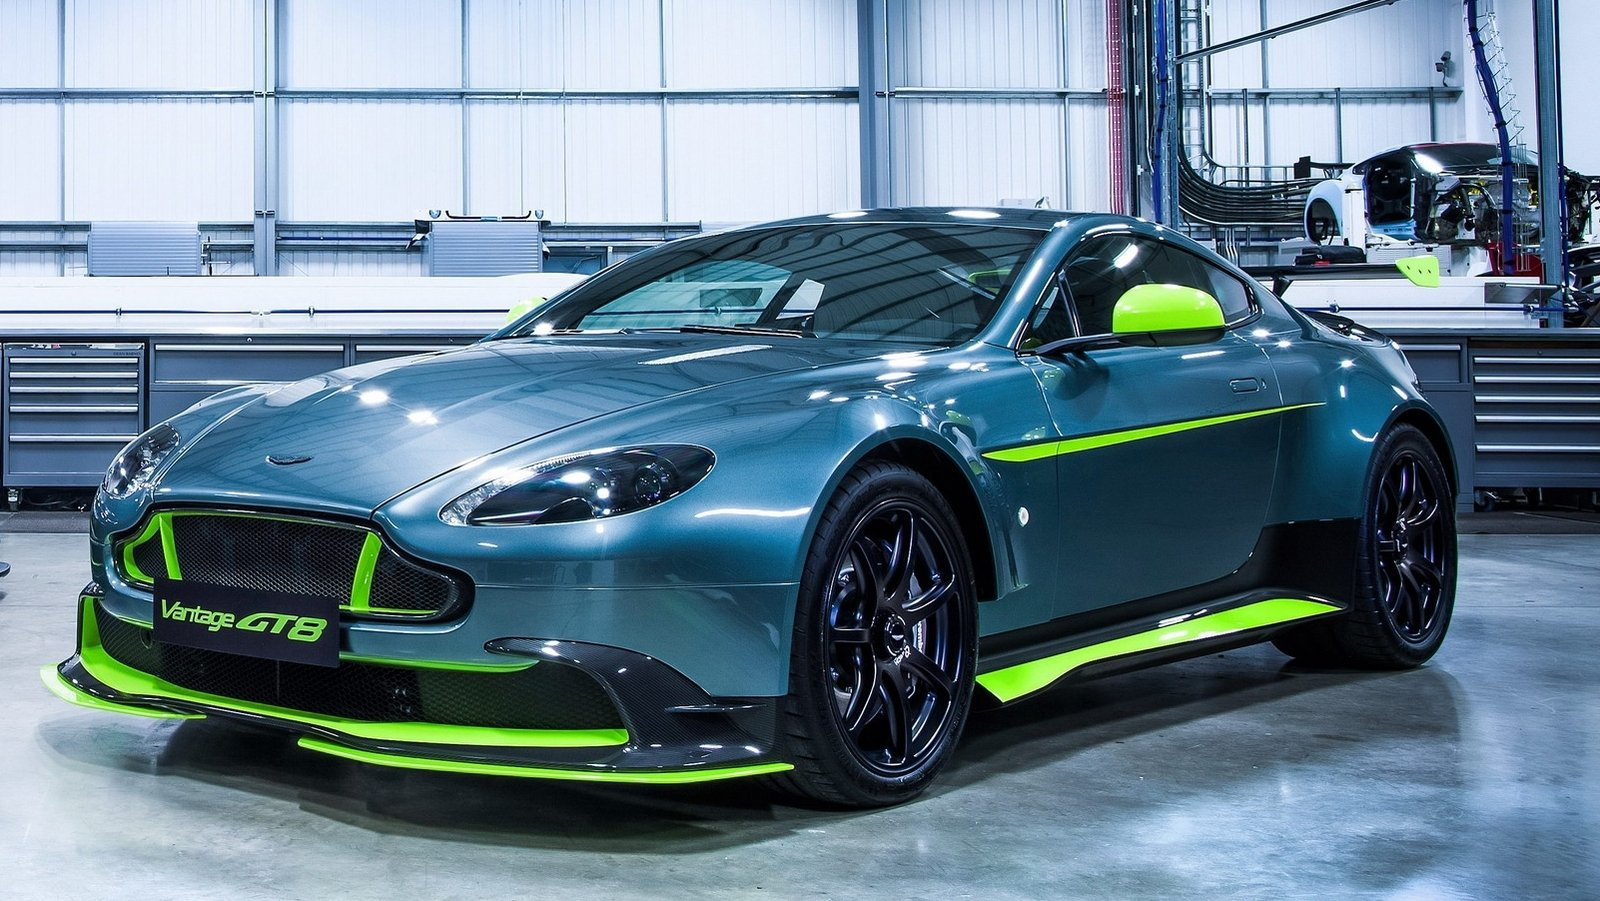 2017 aston martin vantage gt8 top speed. Black Bedroom Furniture Sets. Home Design Ideas